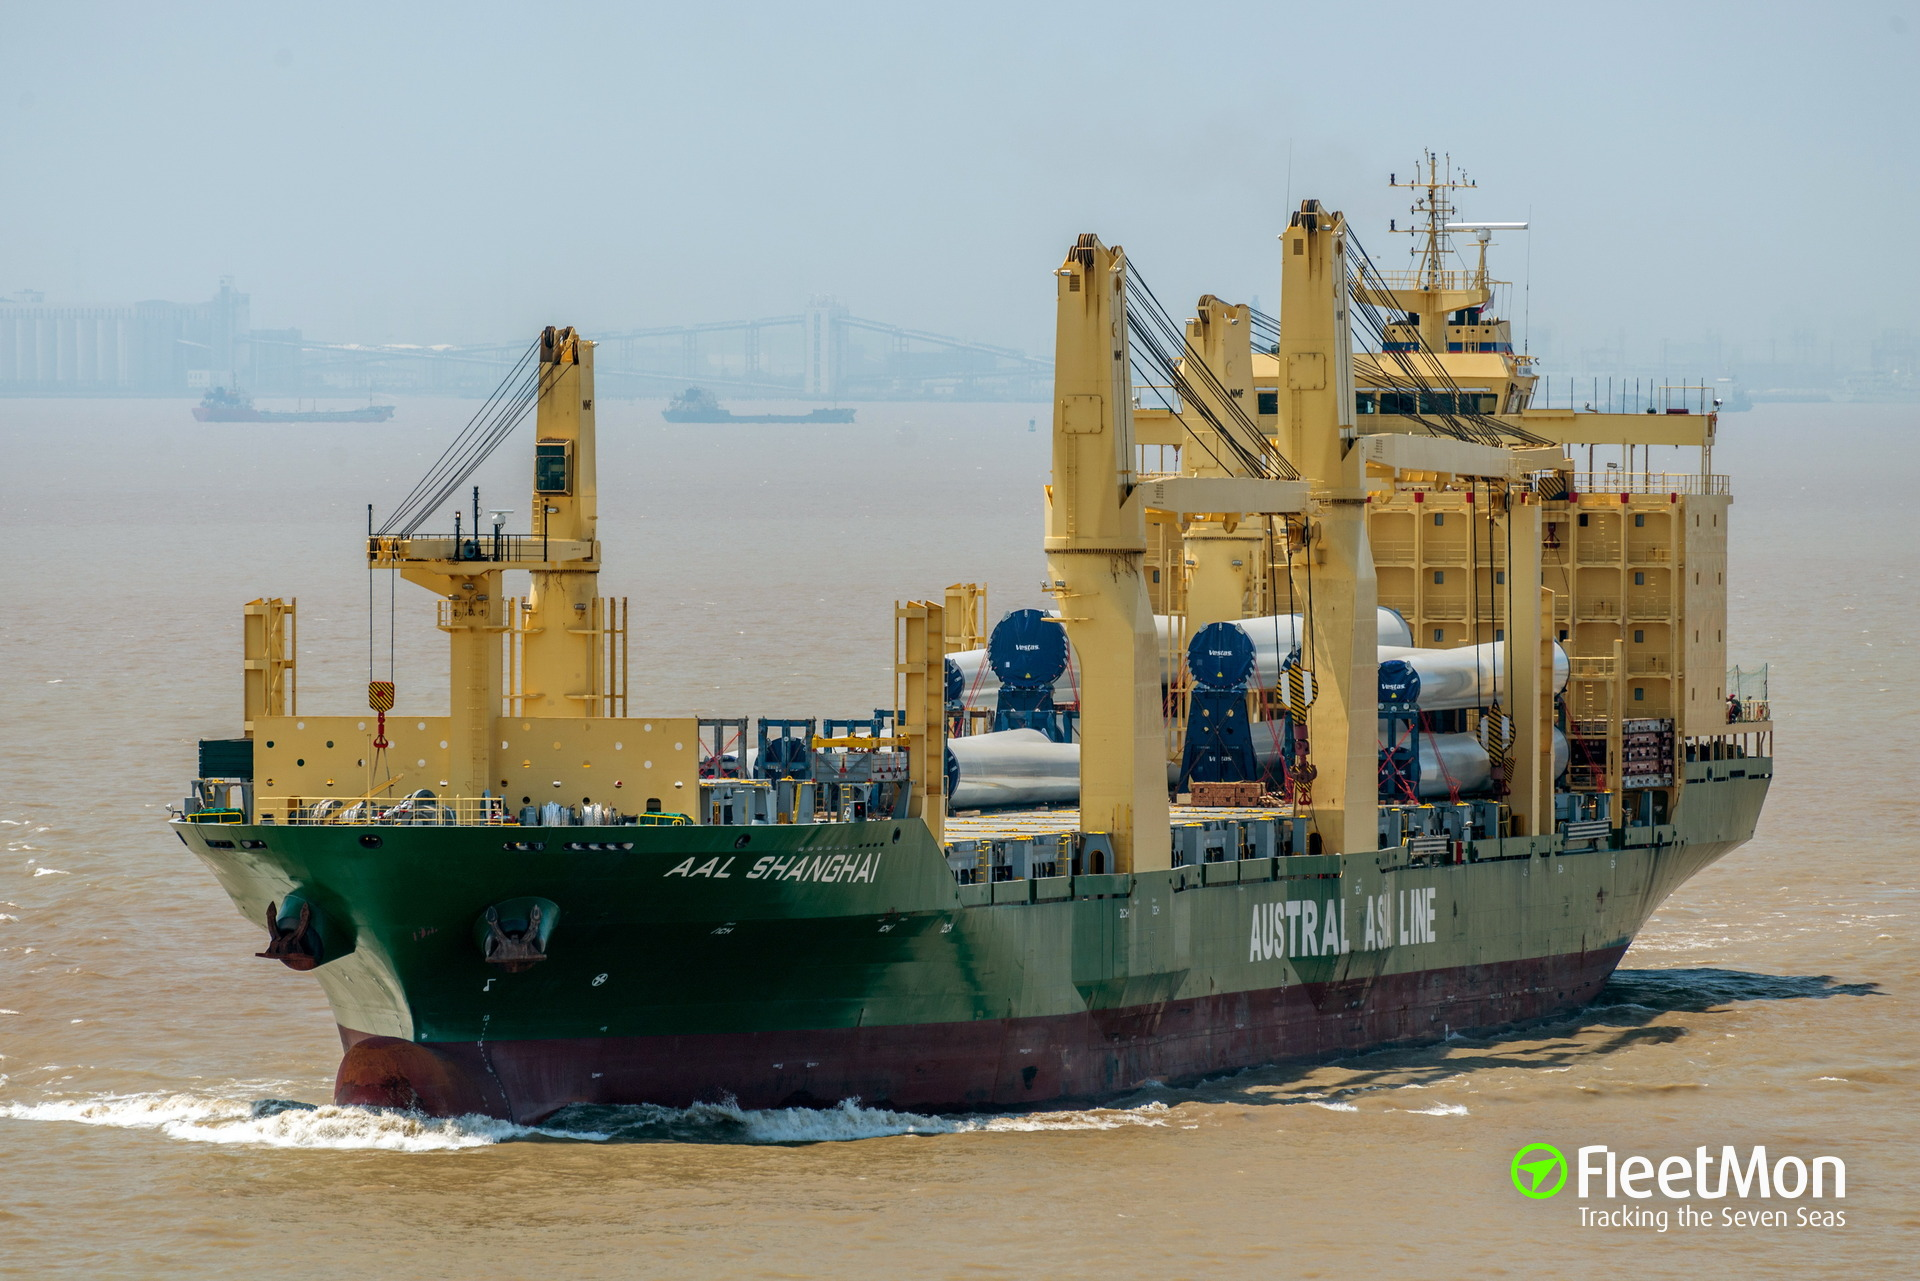 Freighter AAL Shanghai aground, Indonesia